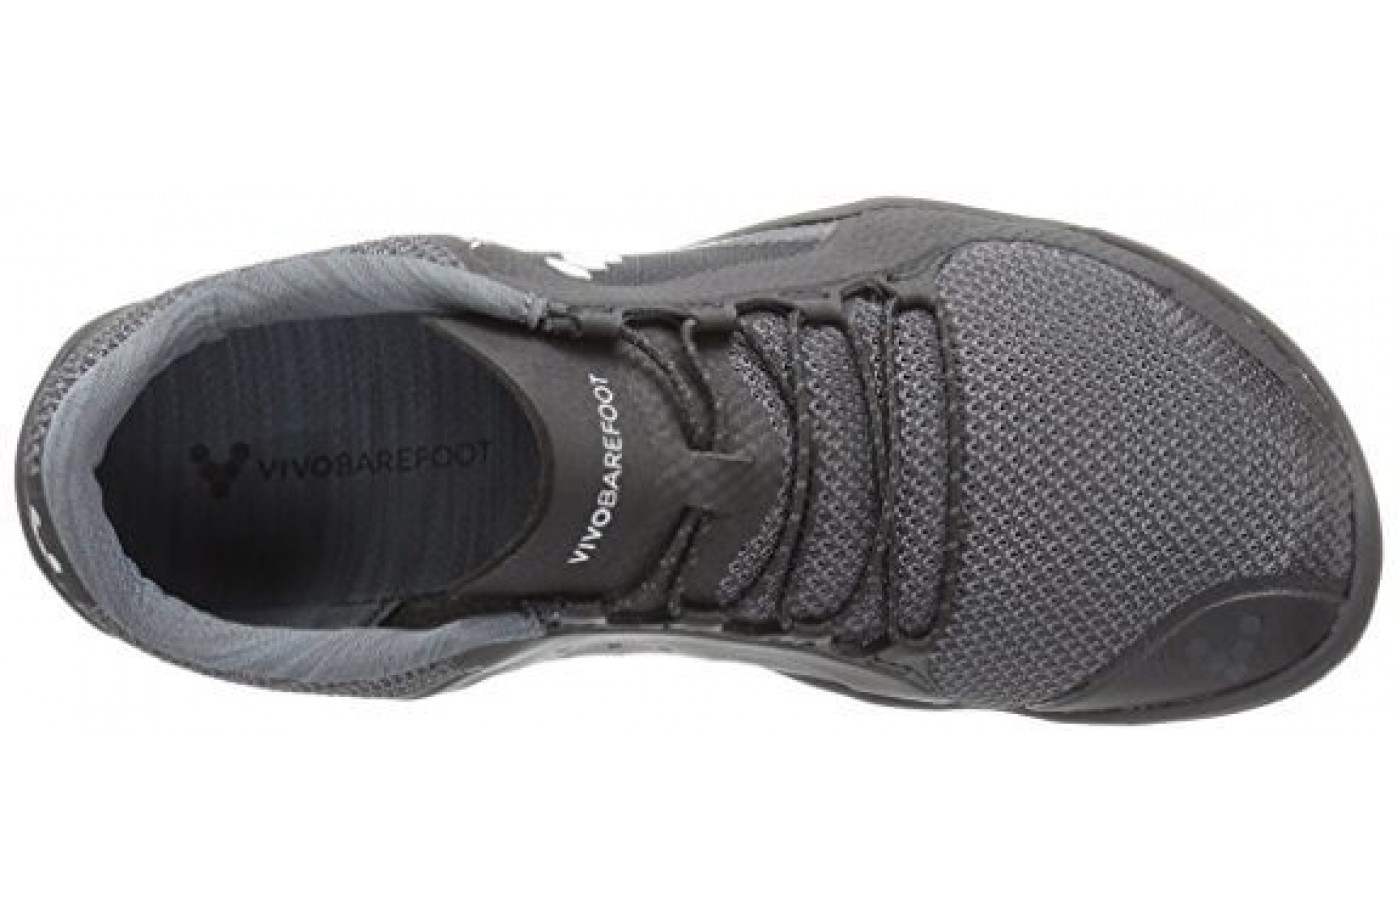 The The Vivobarefoot Primus Trail FG has a removable thermal insole